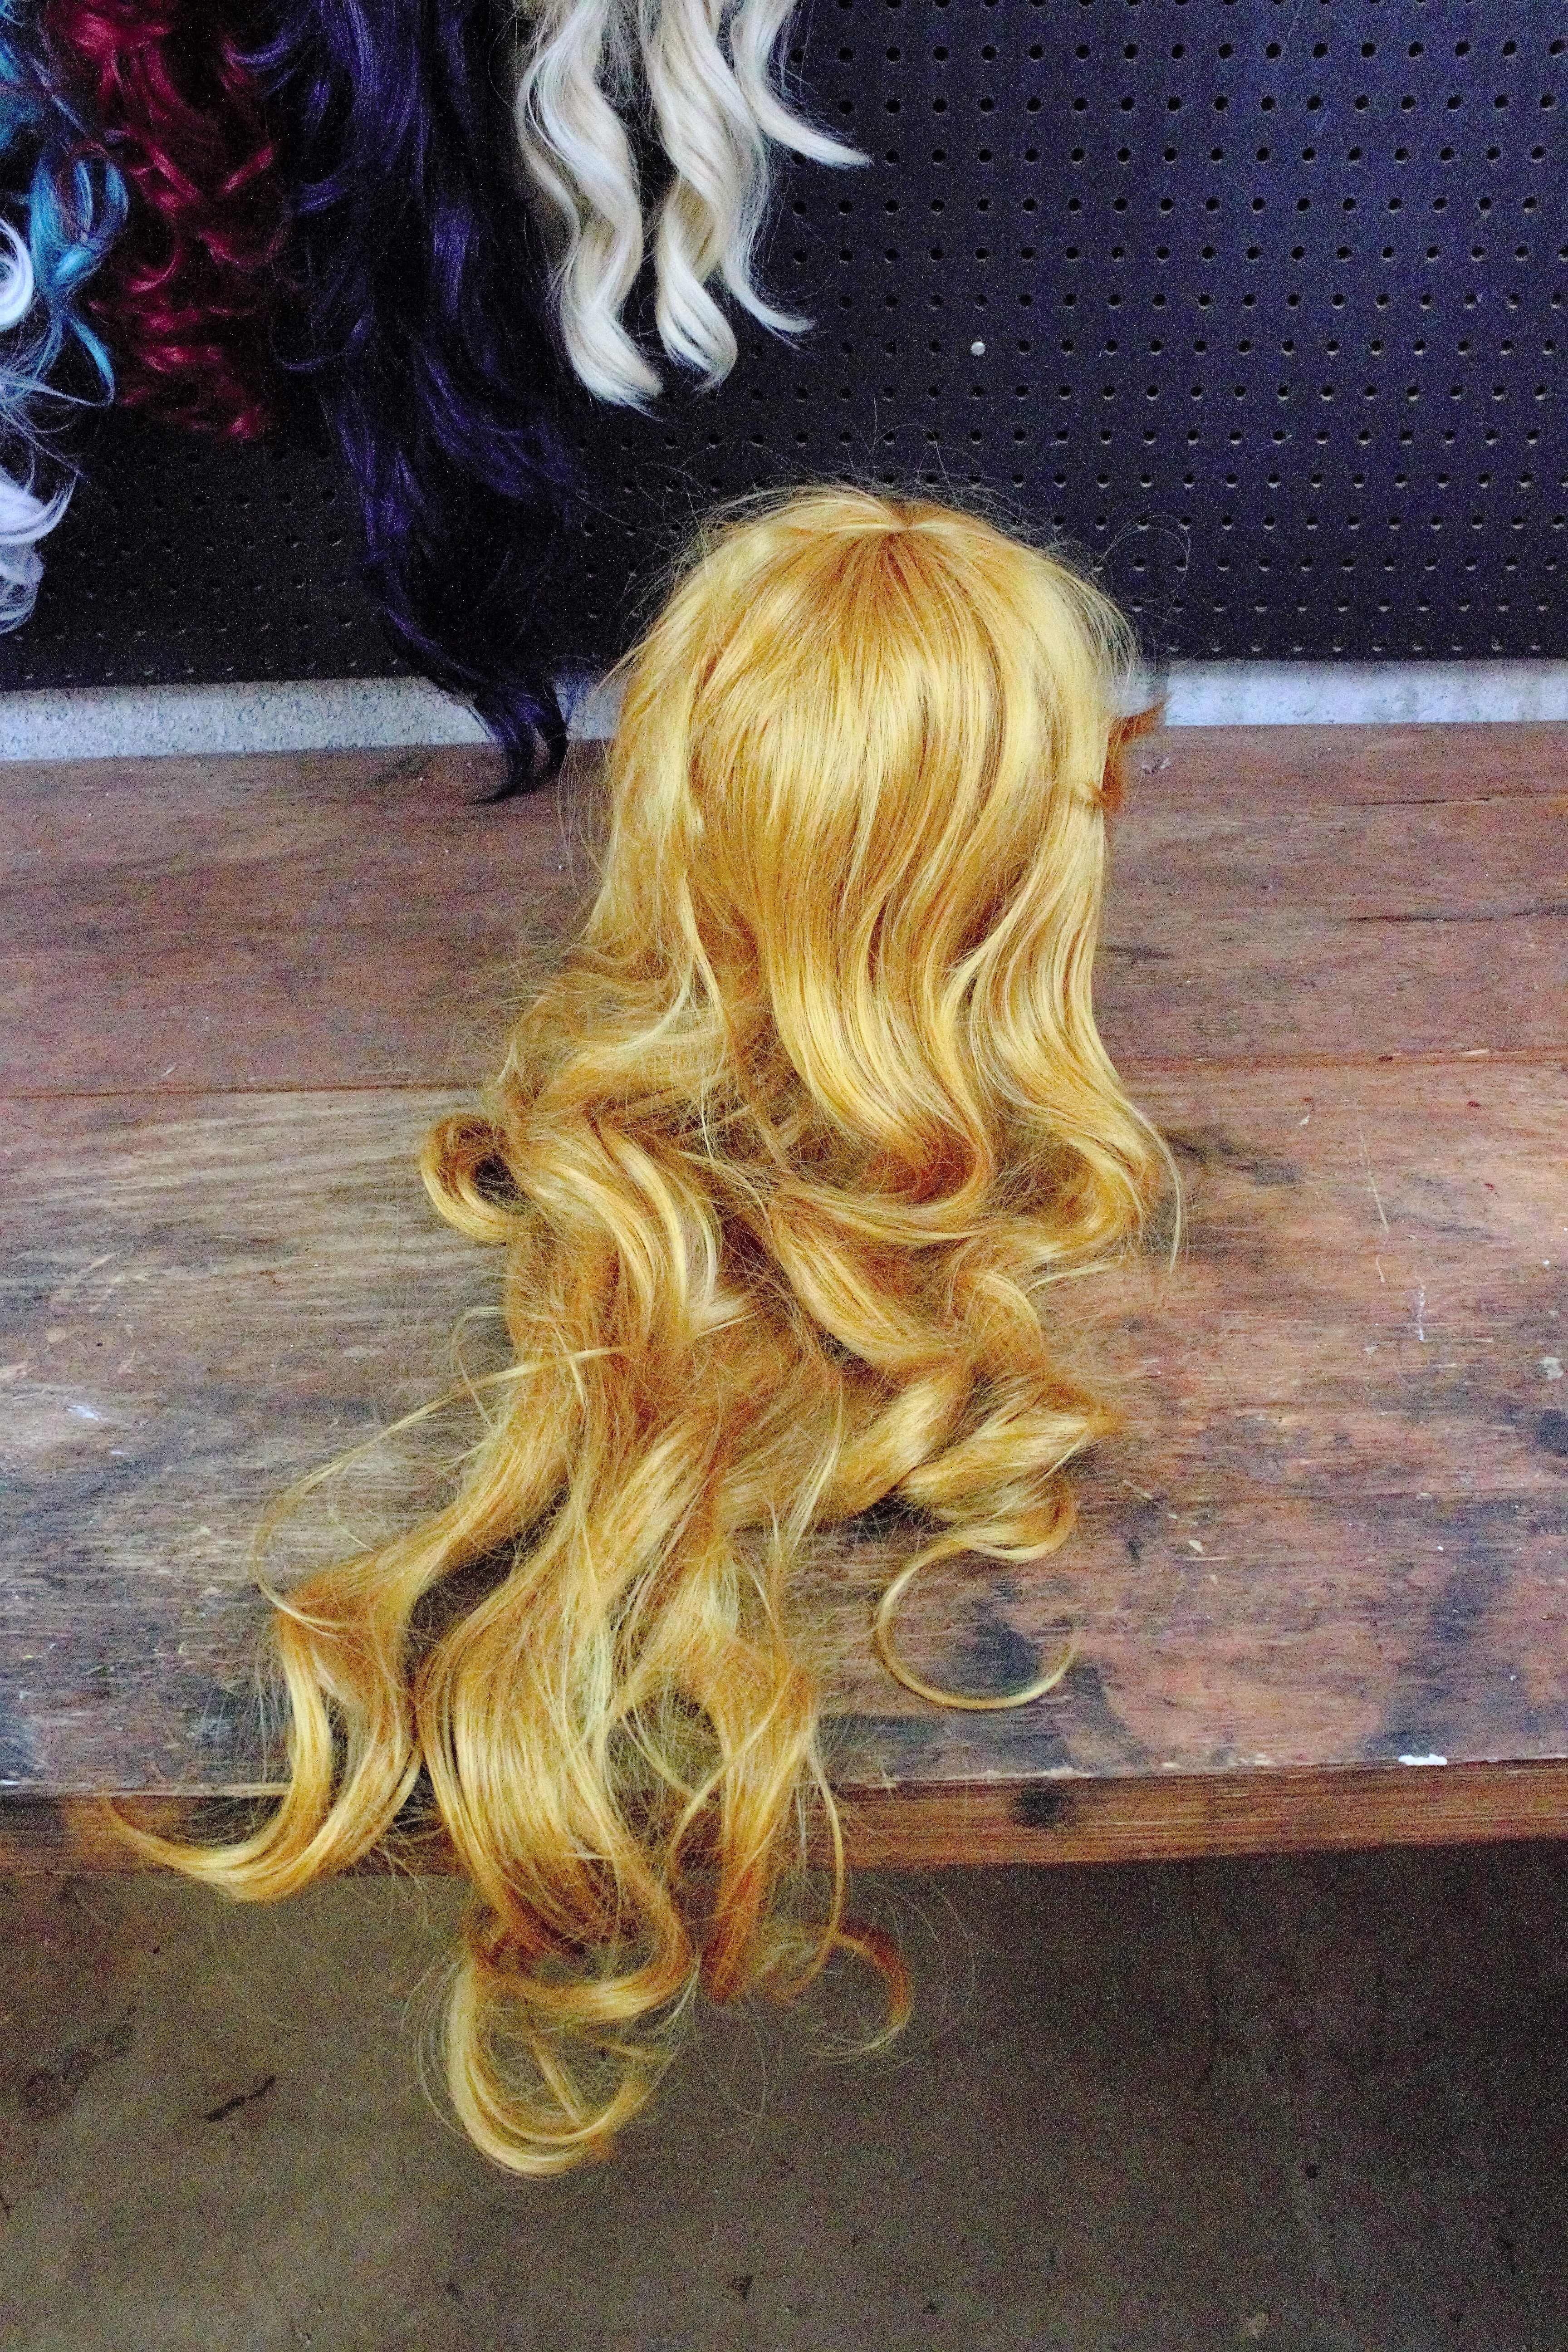 Silicone Spray for Detangling Wigs - Sadie by Design